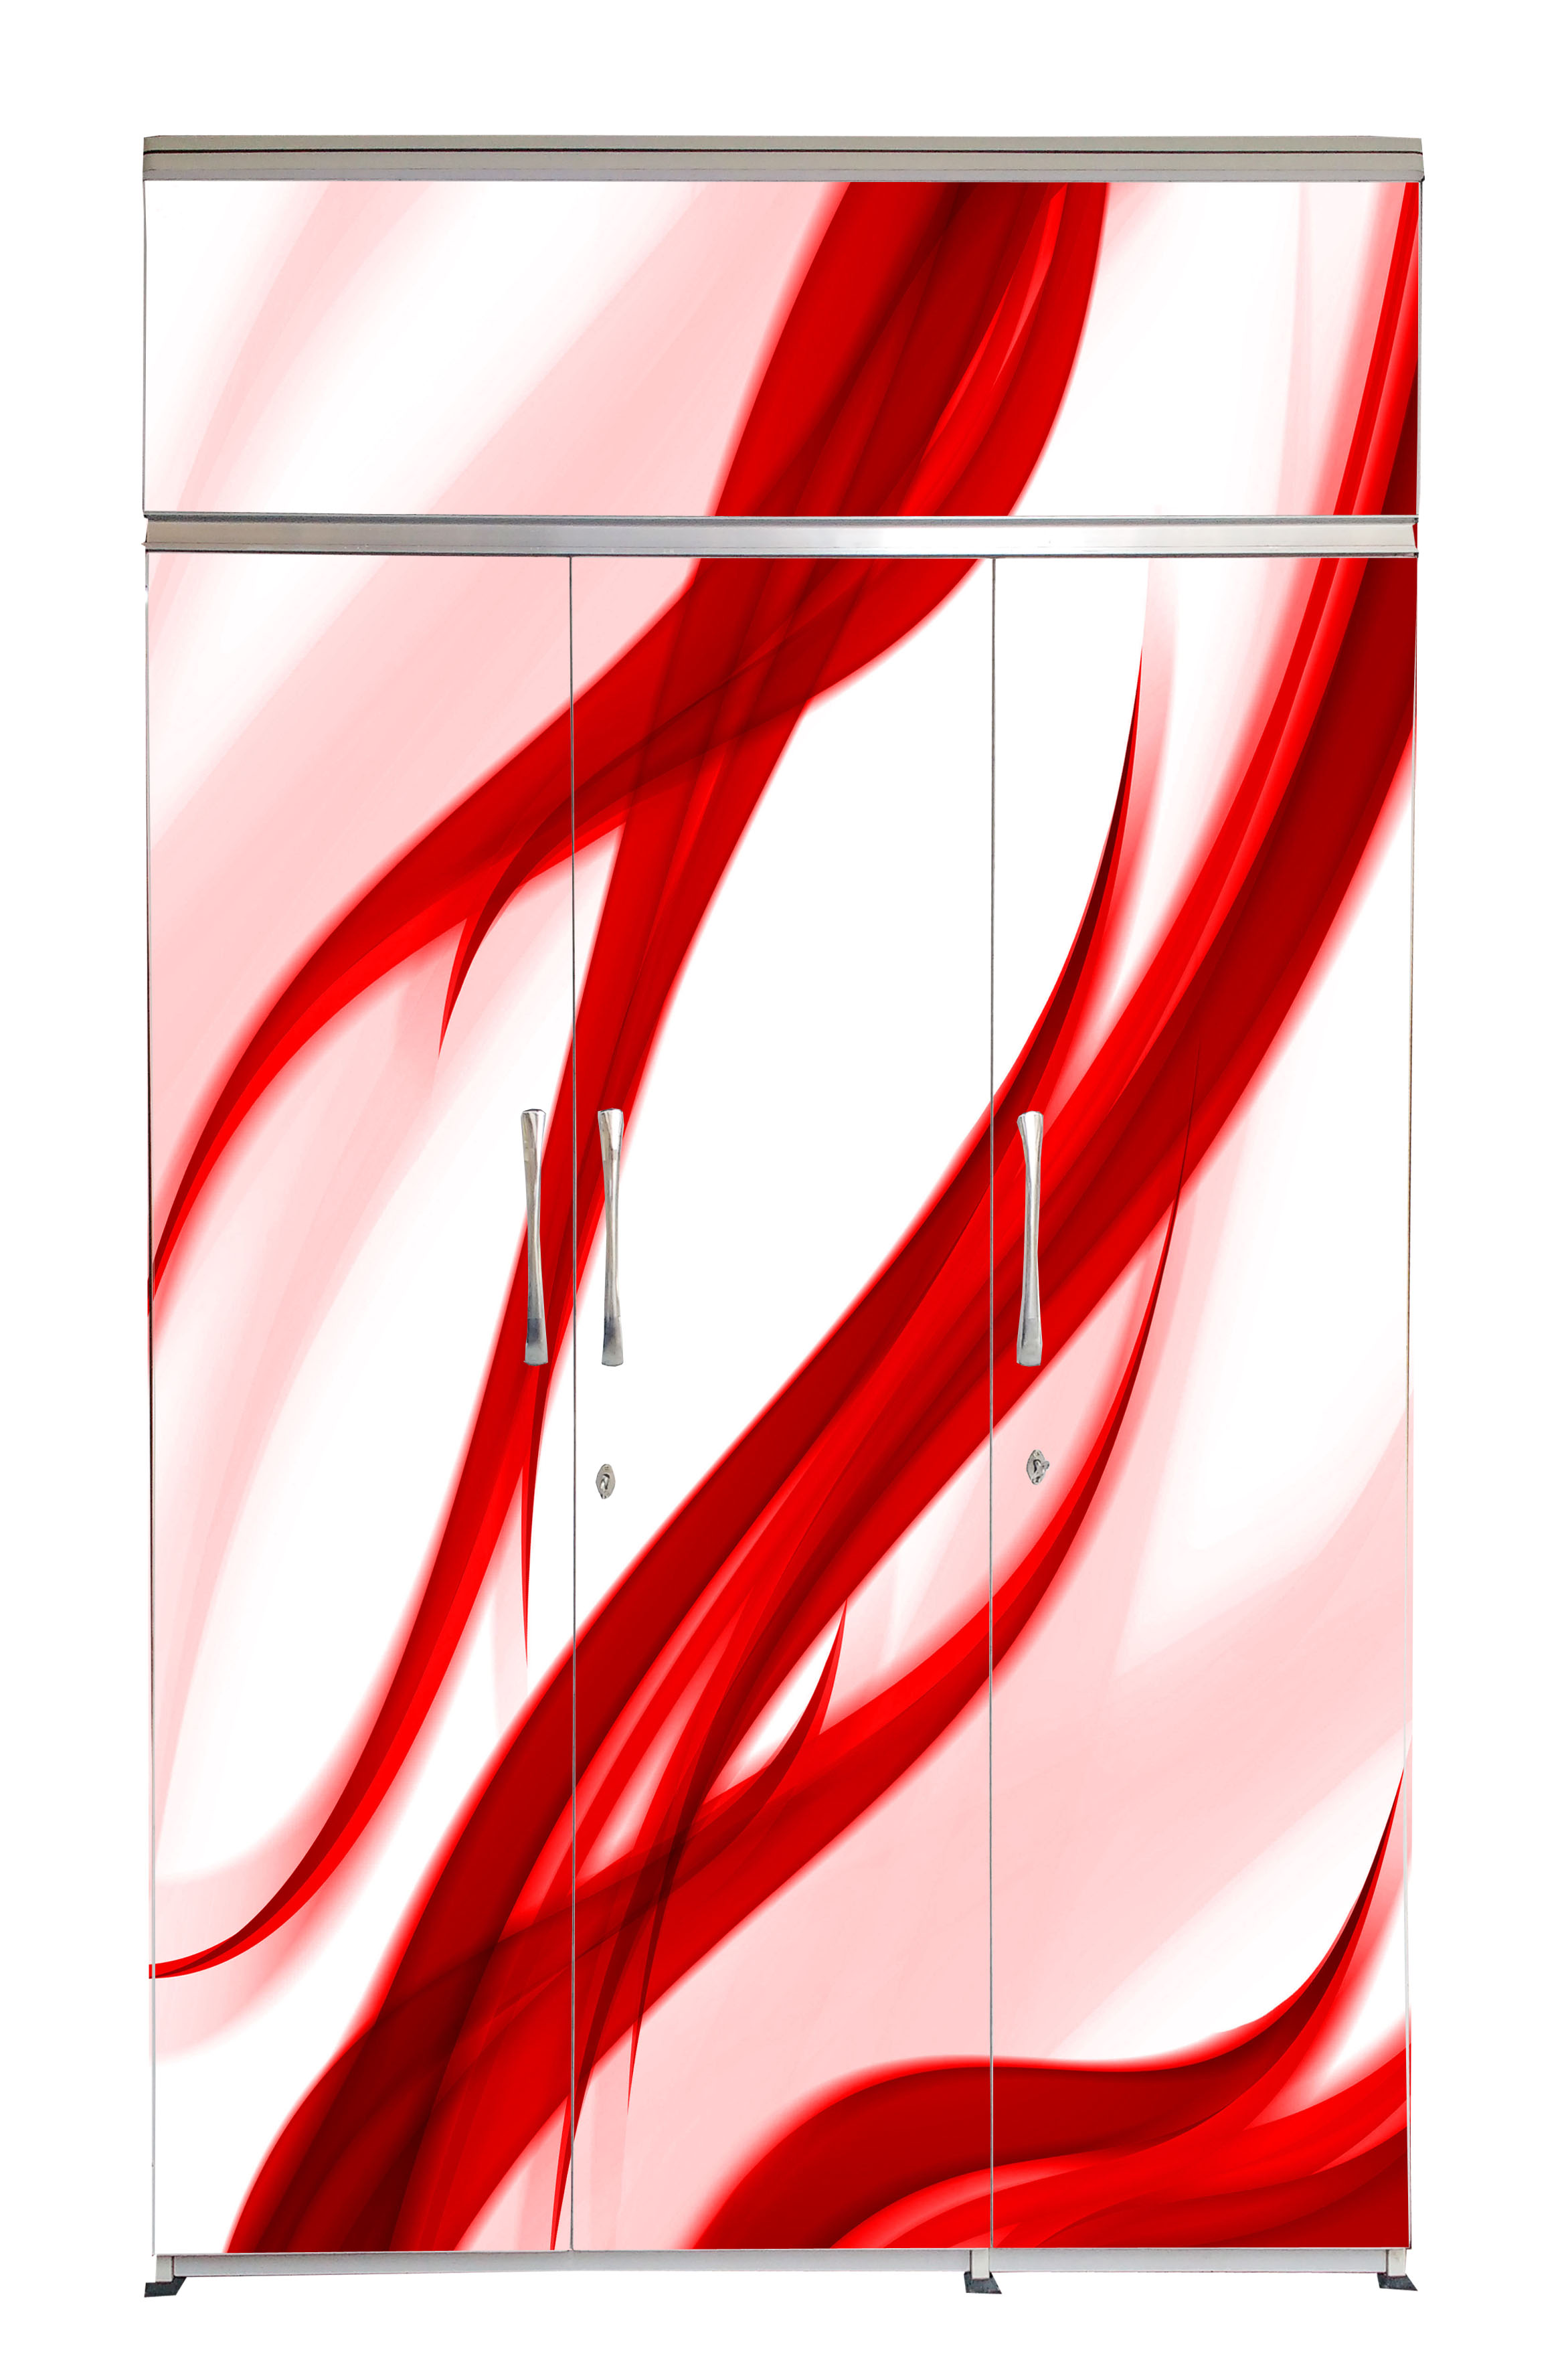 BS-3D-12 - Red Curves-B